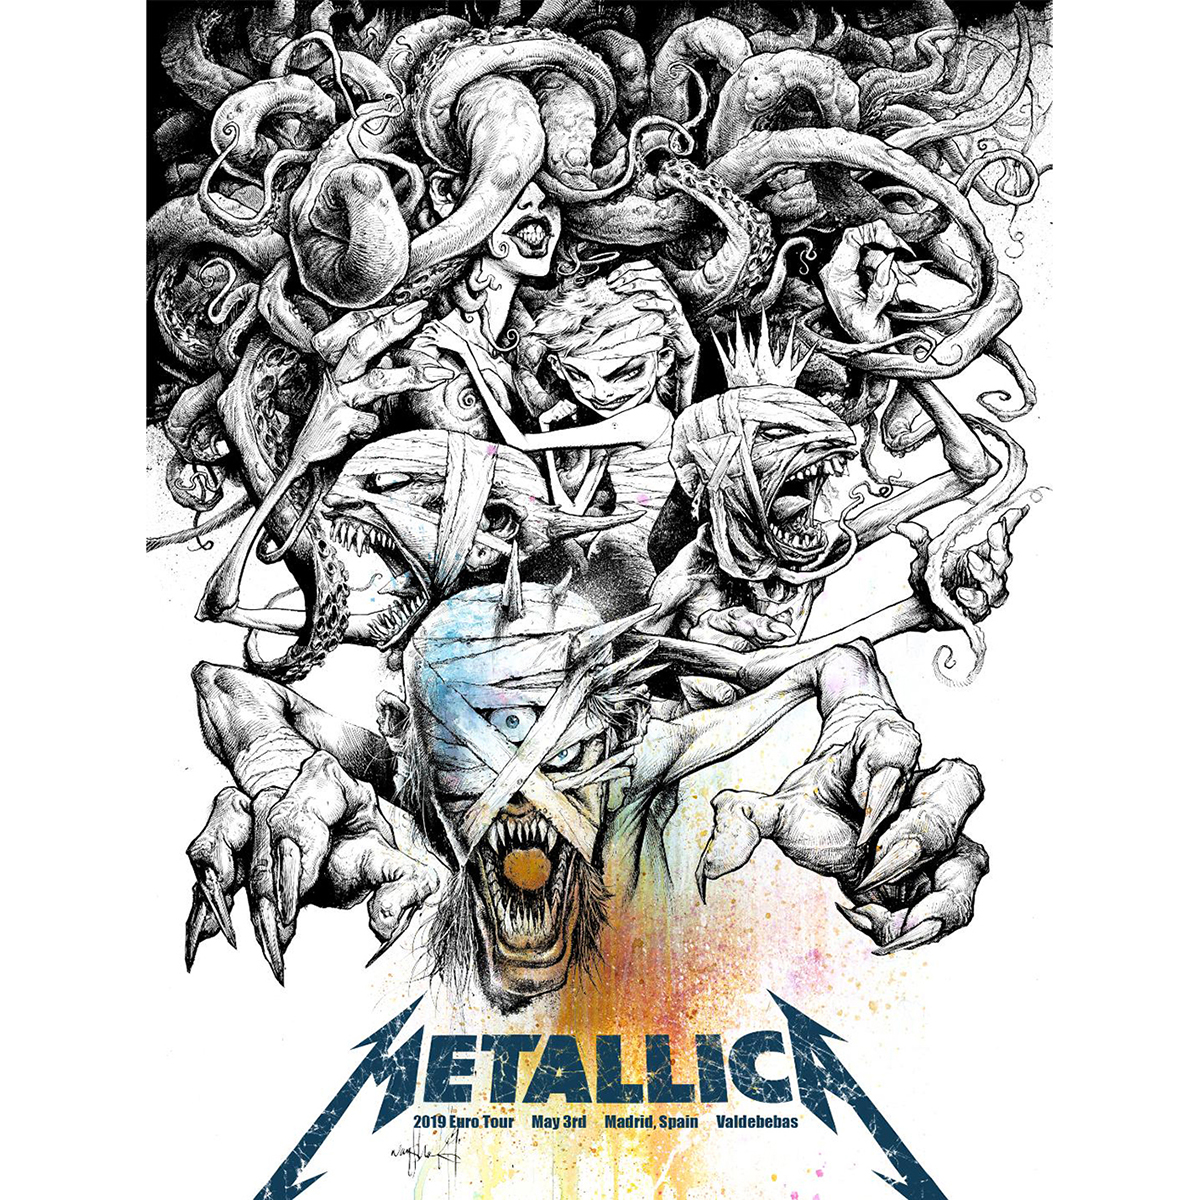 Madrid May 3rd – Limited Edition Numbered Screen Printed Event Poster - Metallica